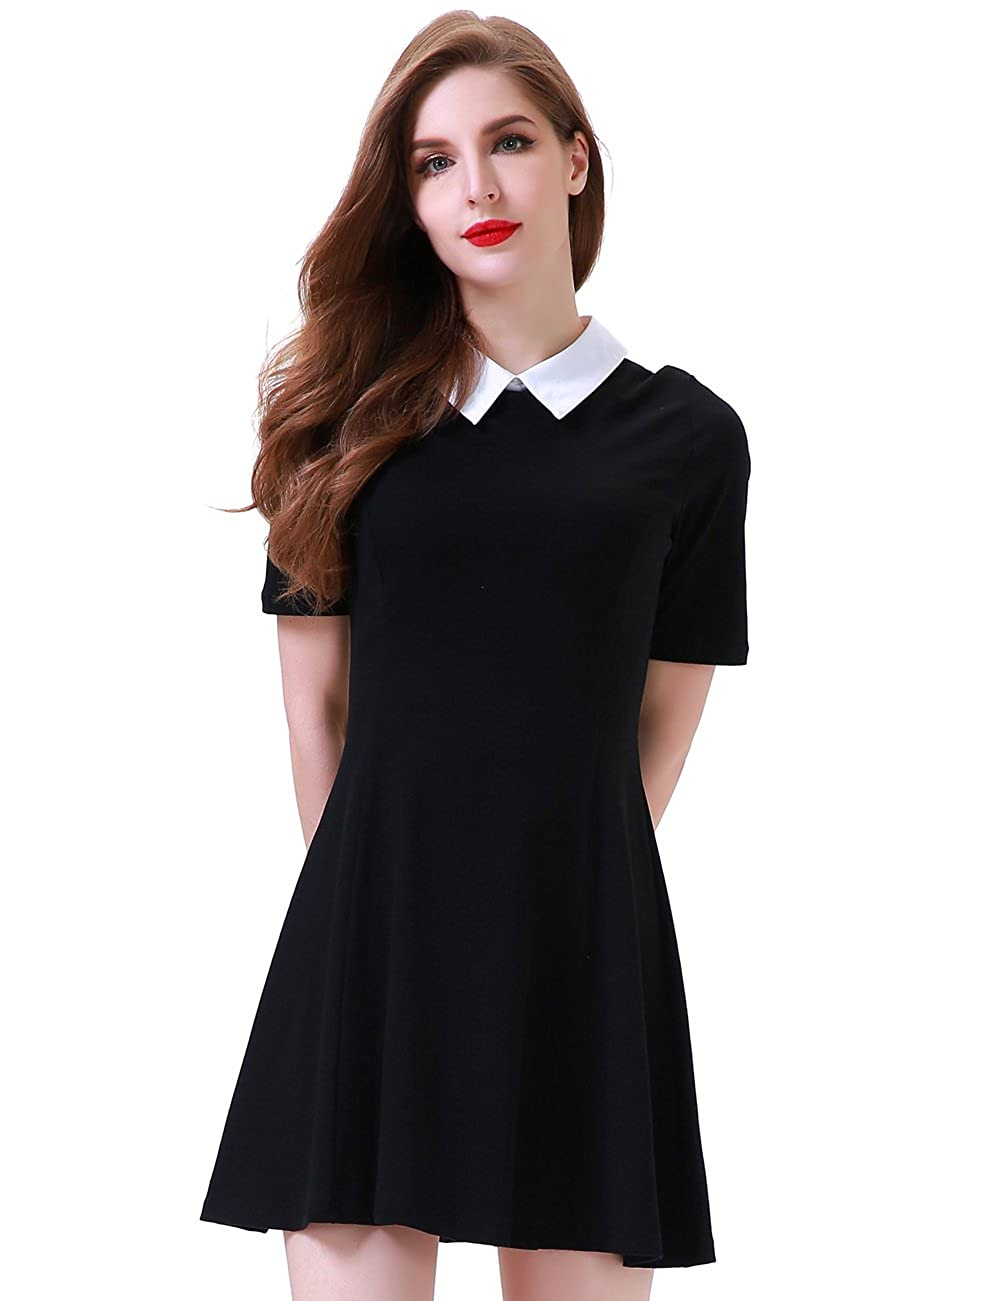 968102d1a4fd2 Aphratti Women's Short Sleeve Casual Peter Pan Collar Flare Dress at Amazon  Women's Clothing store: